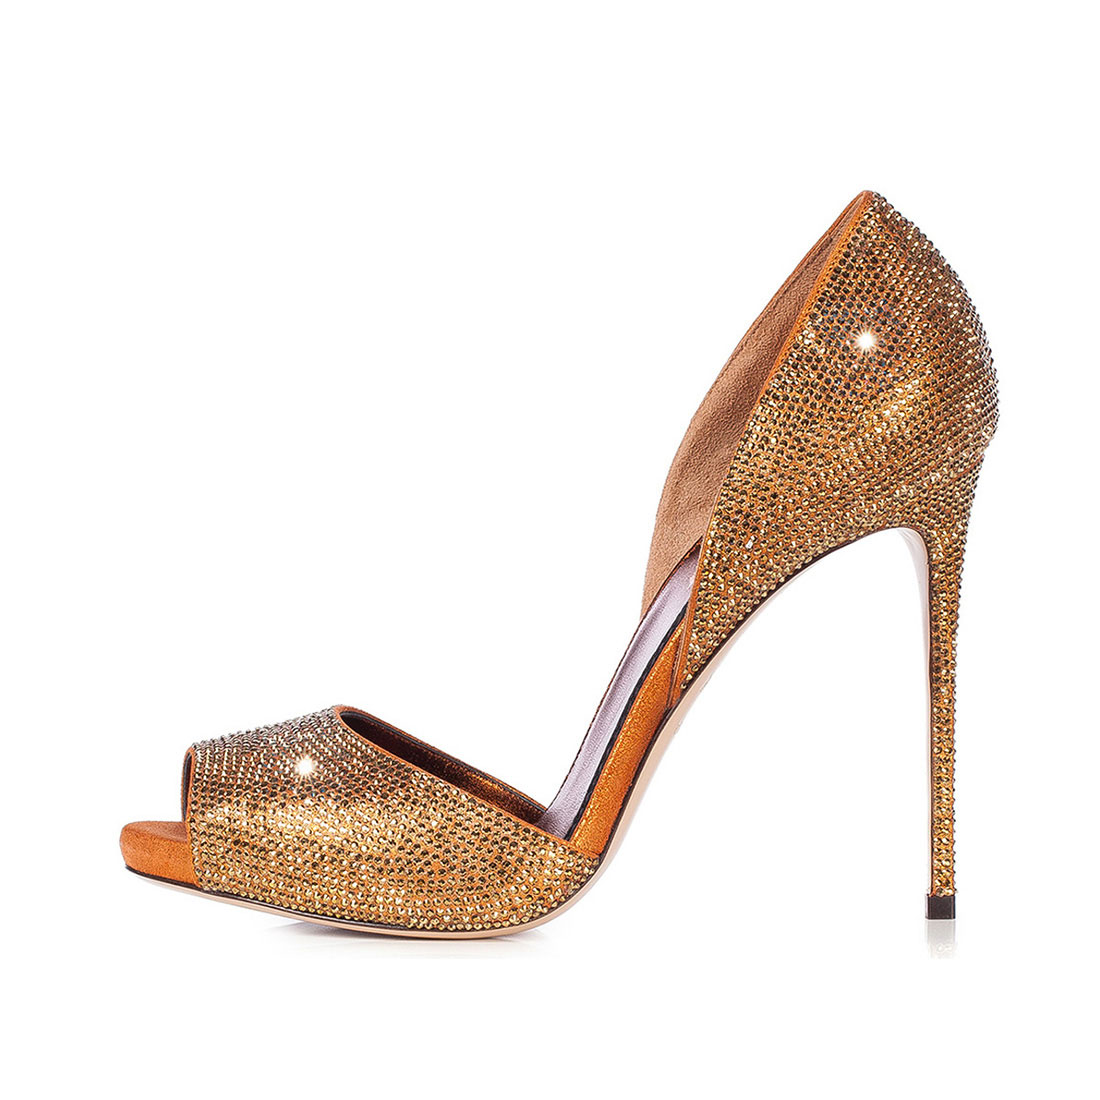 Suede leather gold high heel thin peep toe dress party diamante sandals YB3075